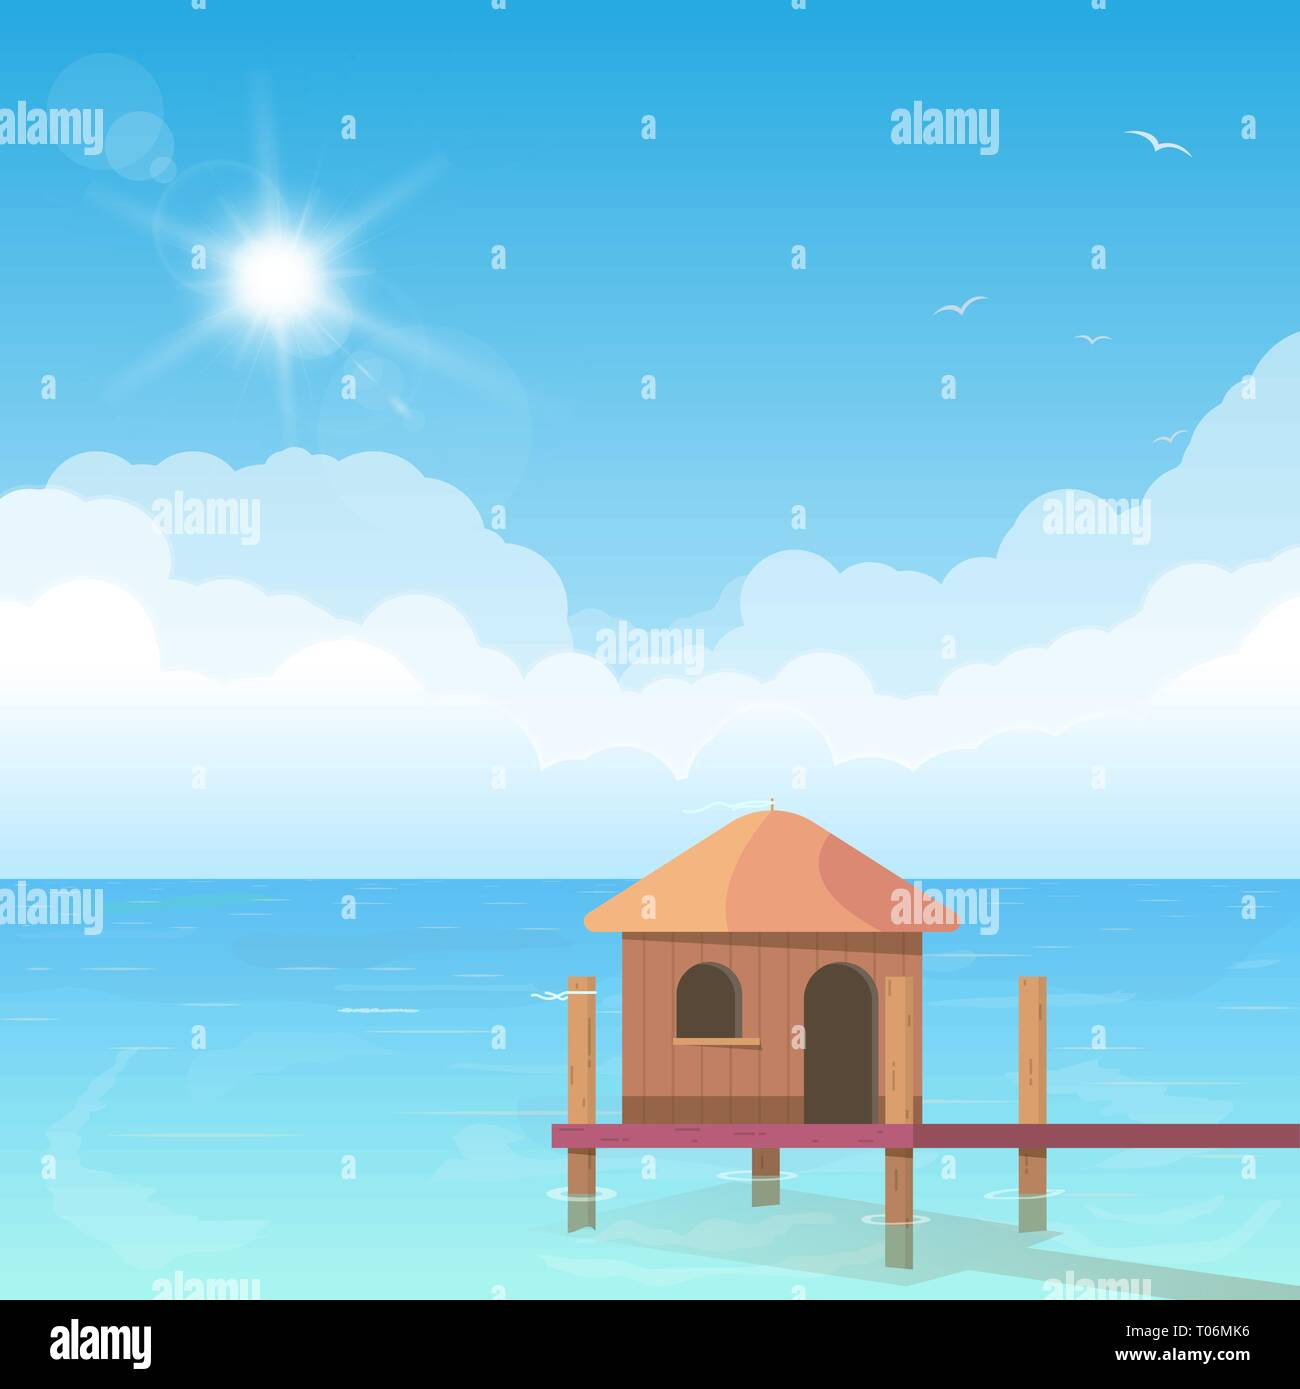 Bungalow on water - Stock Vector